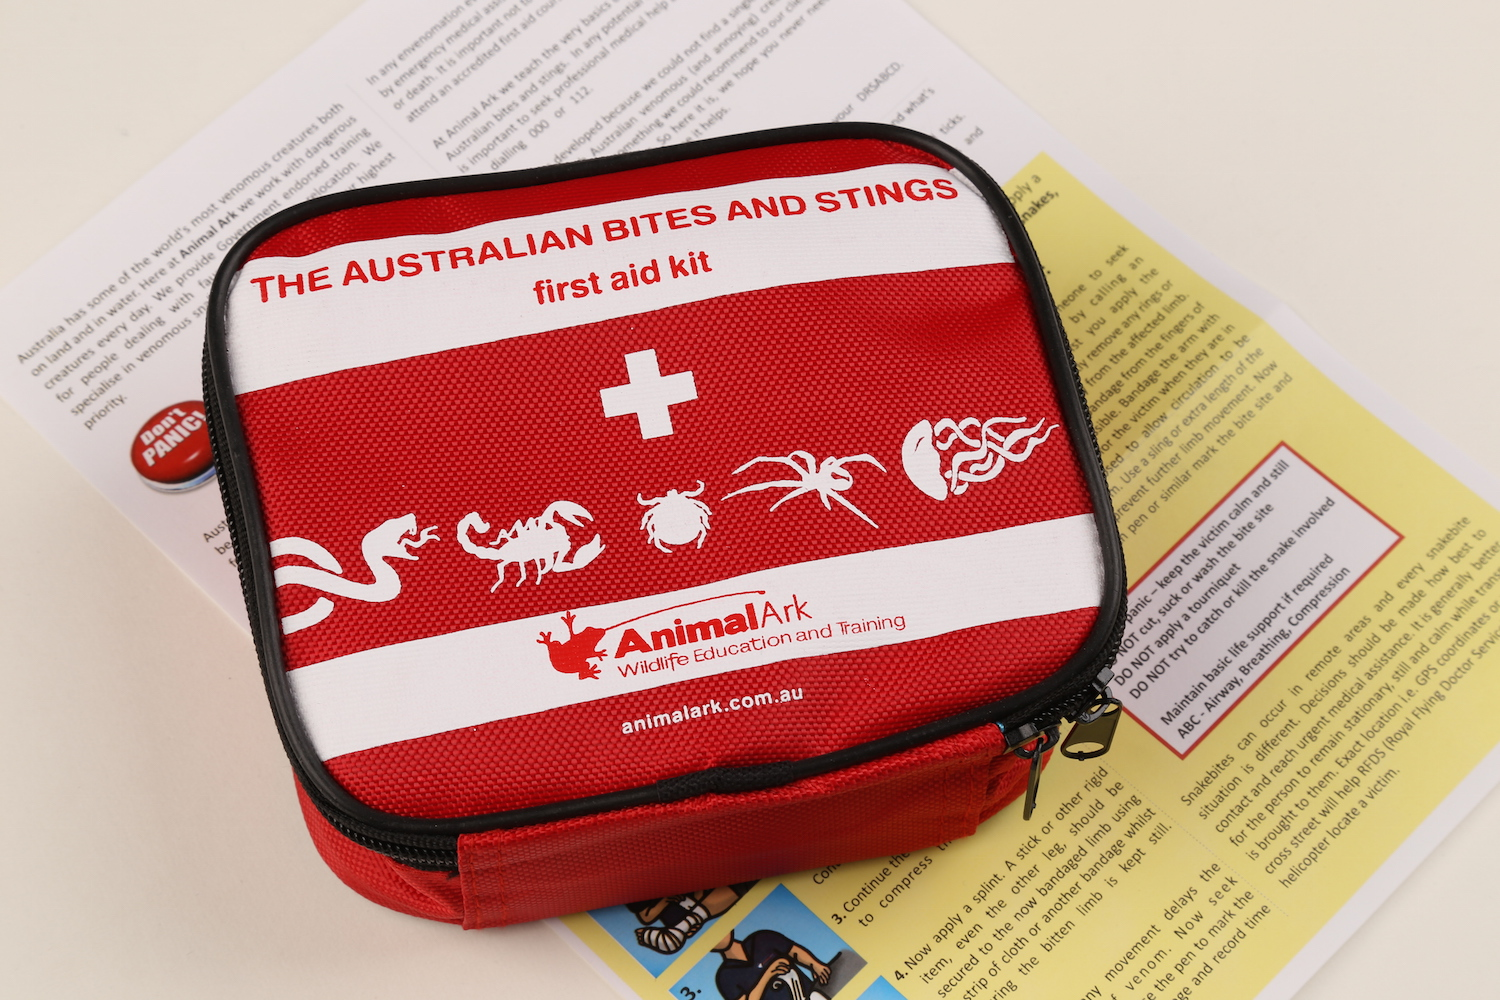 Australian bites and stings first aid kit - available from Animal Ark